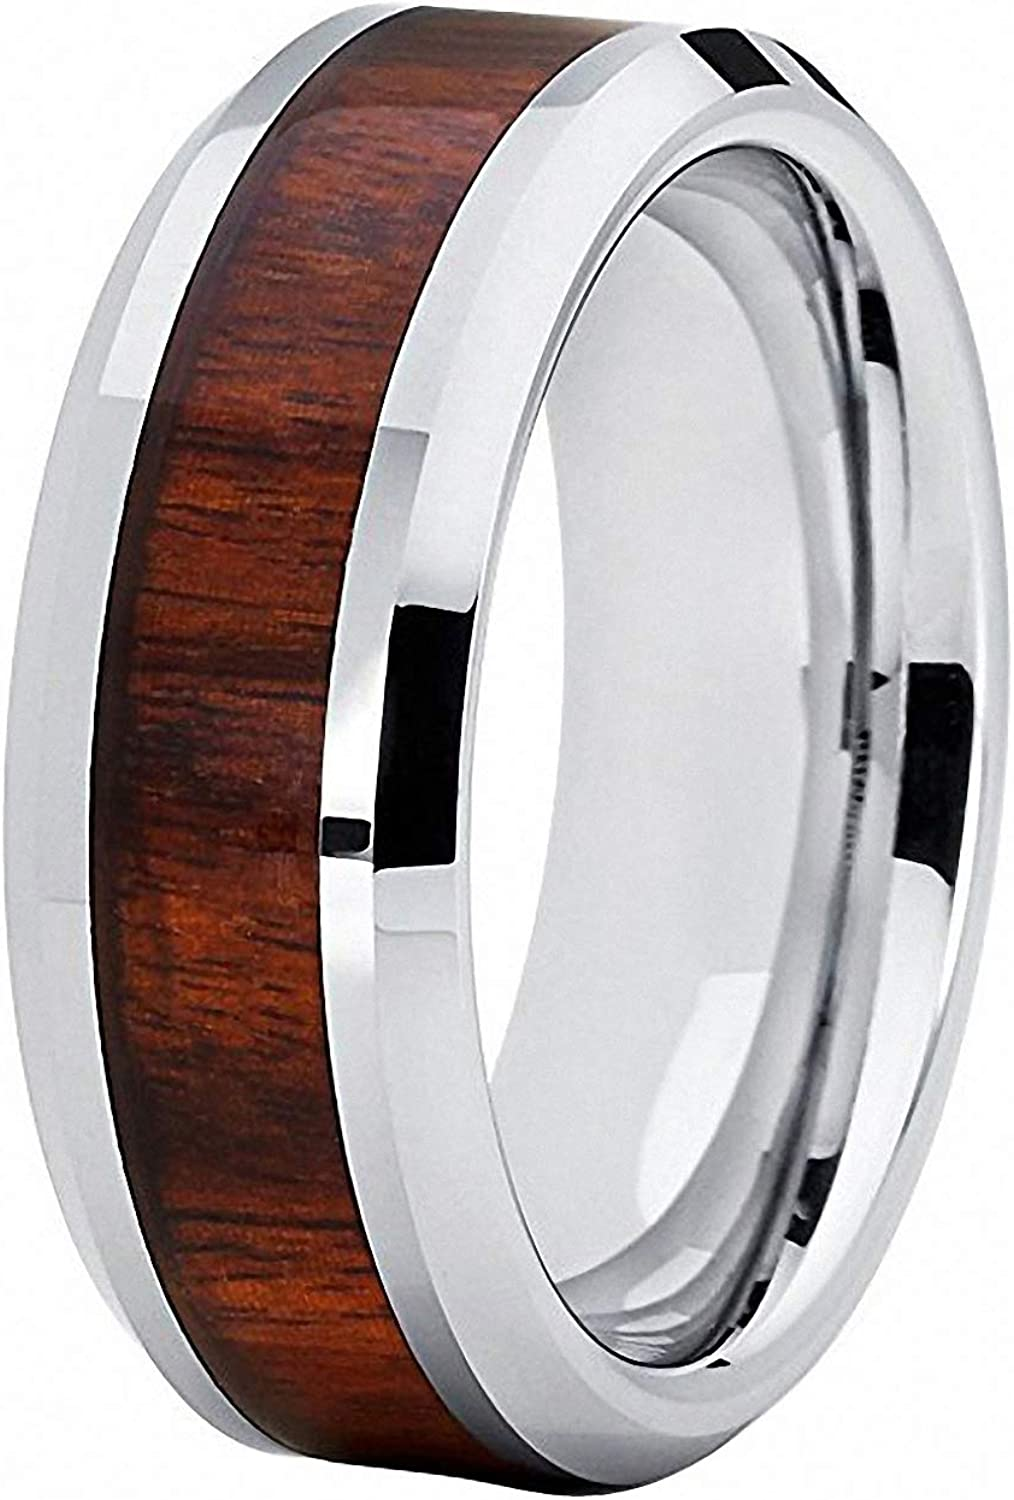 N-A 8 mm Wedding Band Men Woman Tungsten Carbide Ring with Rosewood Wood Inlay Comfort Fit